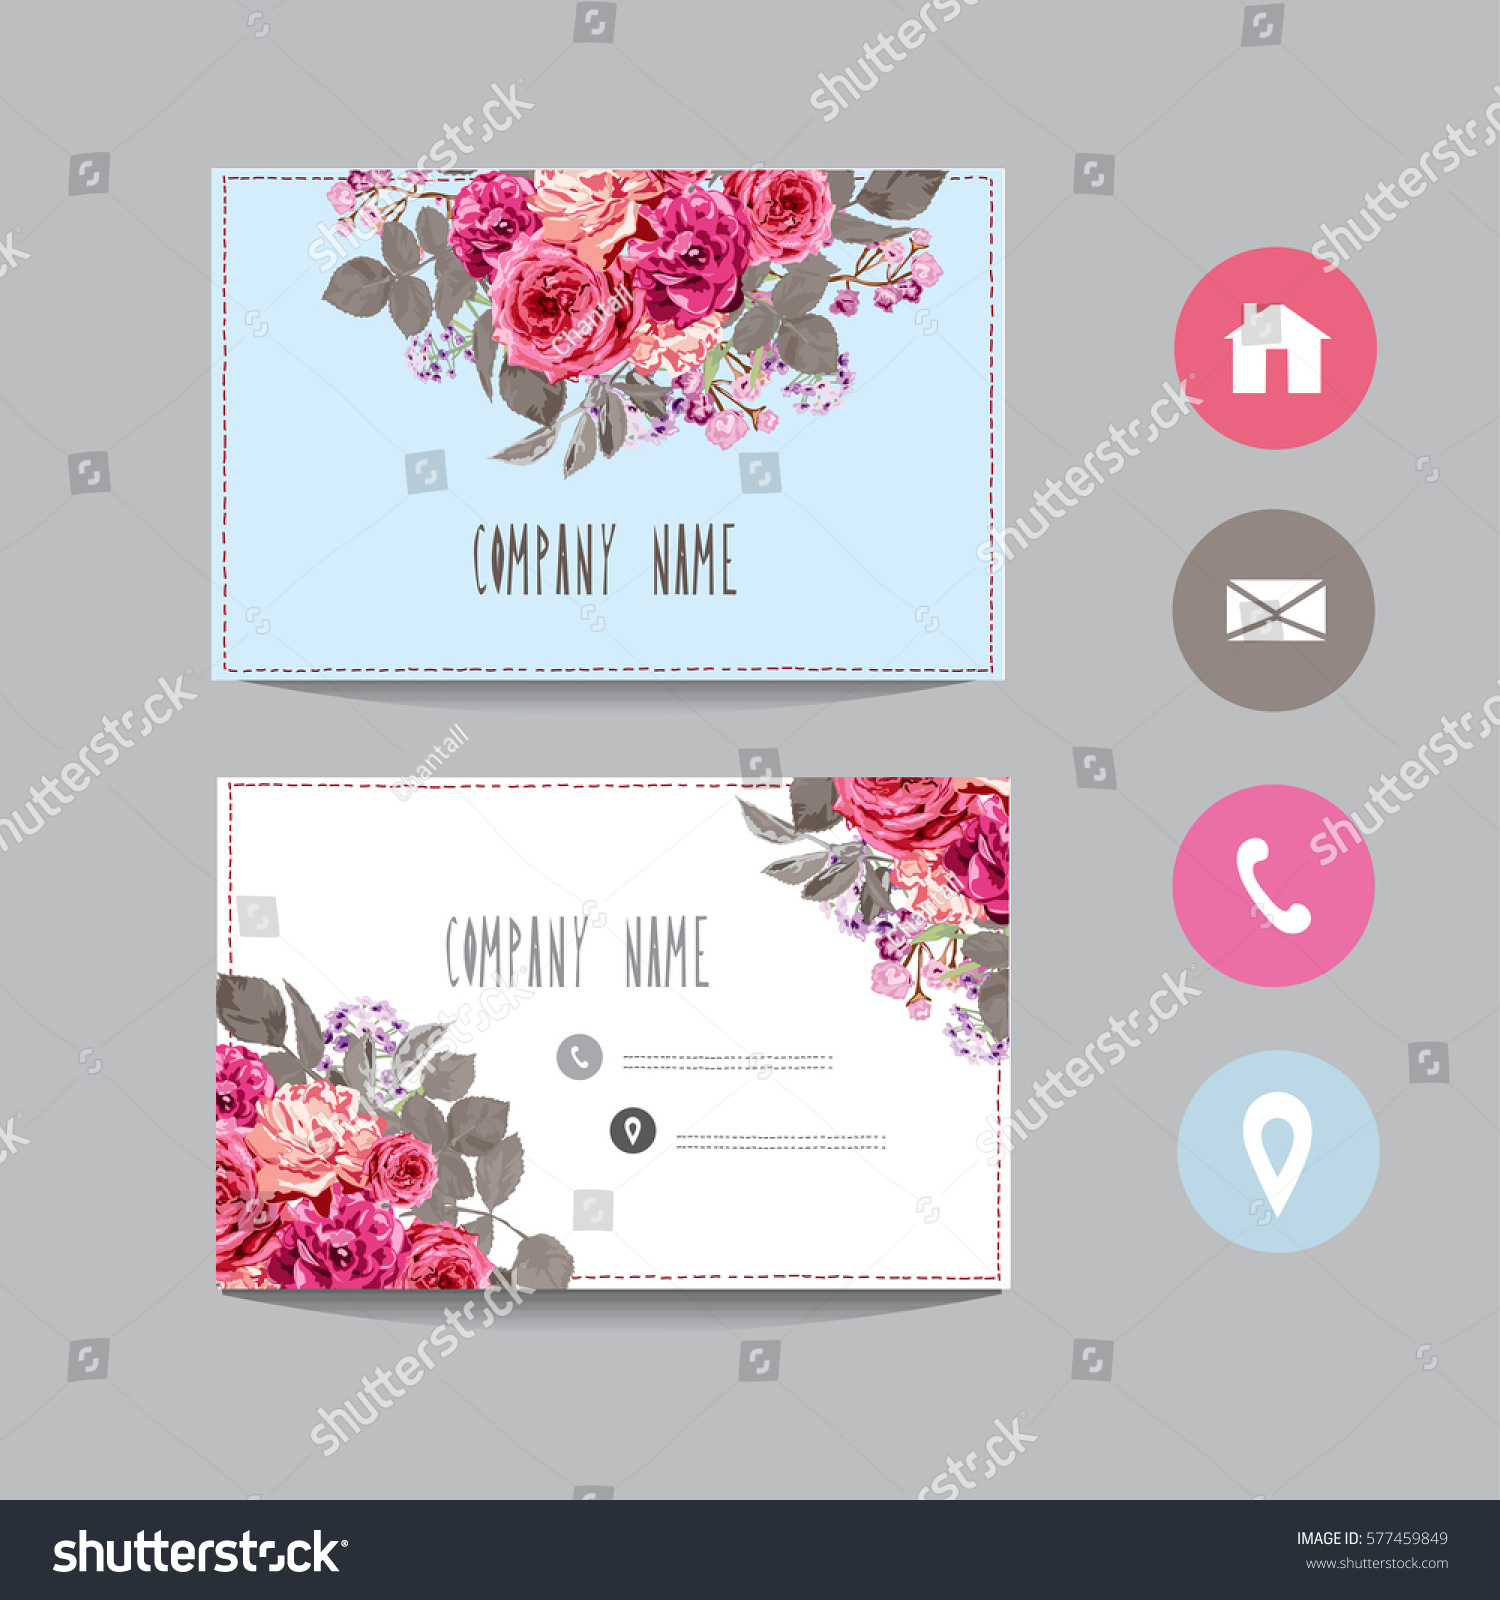 business card template design element can stock vector